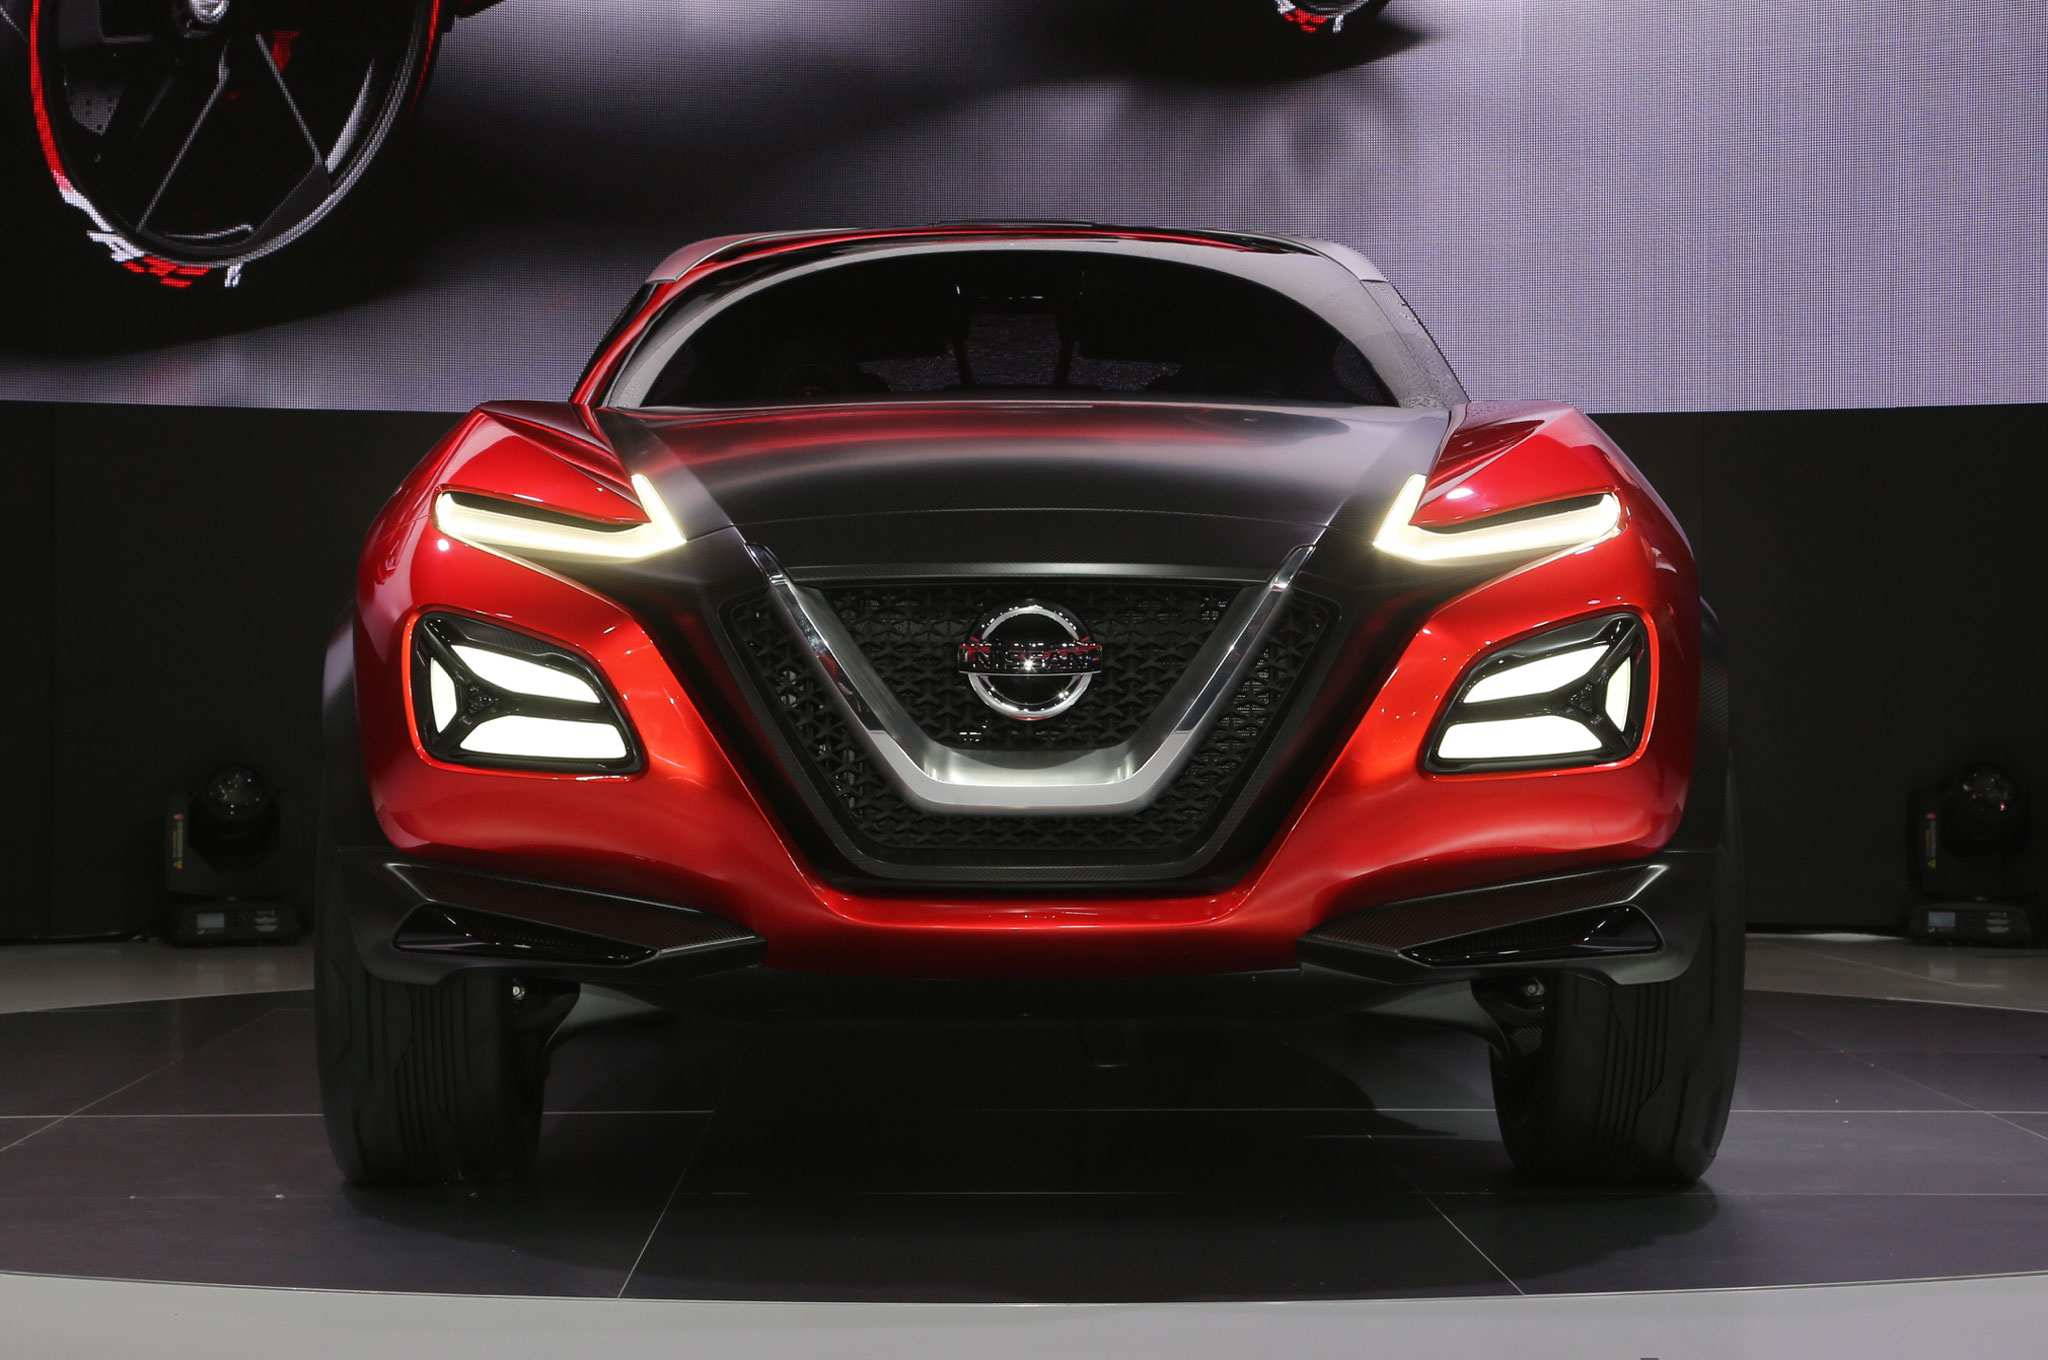 78 All New 2019 Nissan Gripz Pricing by 2019 Nissan Gripz